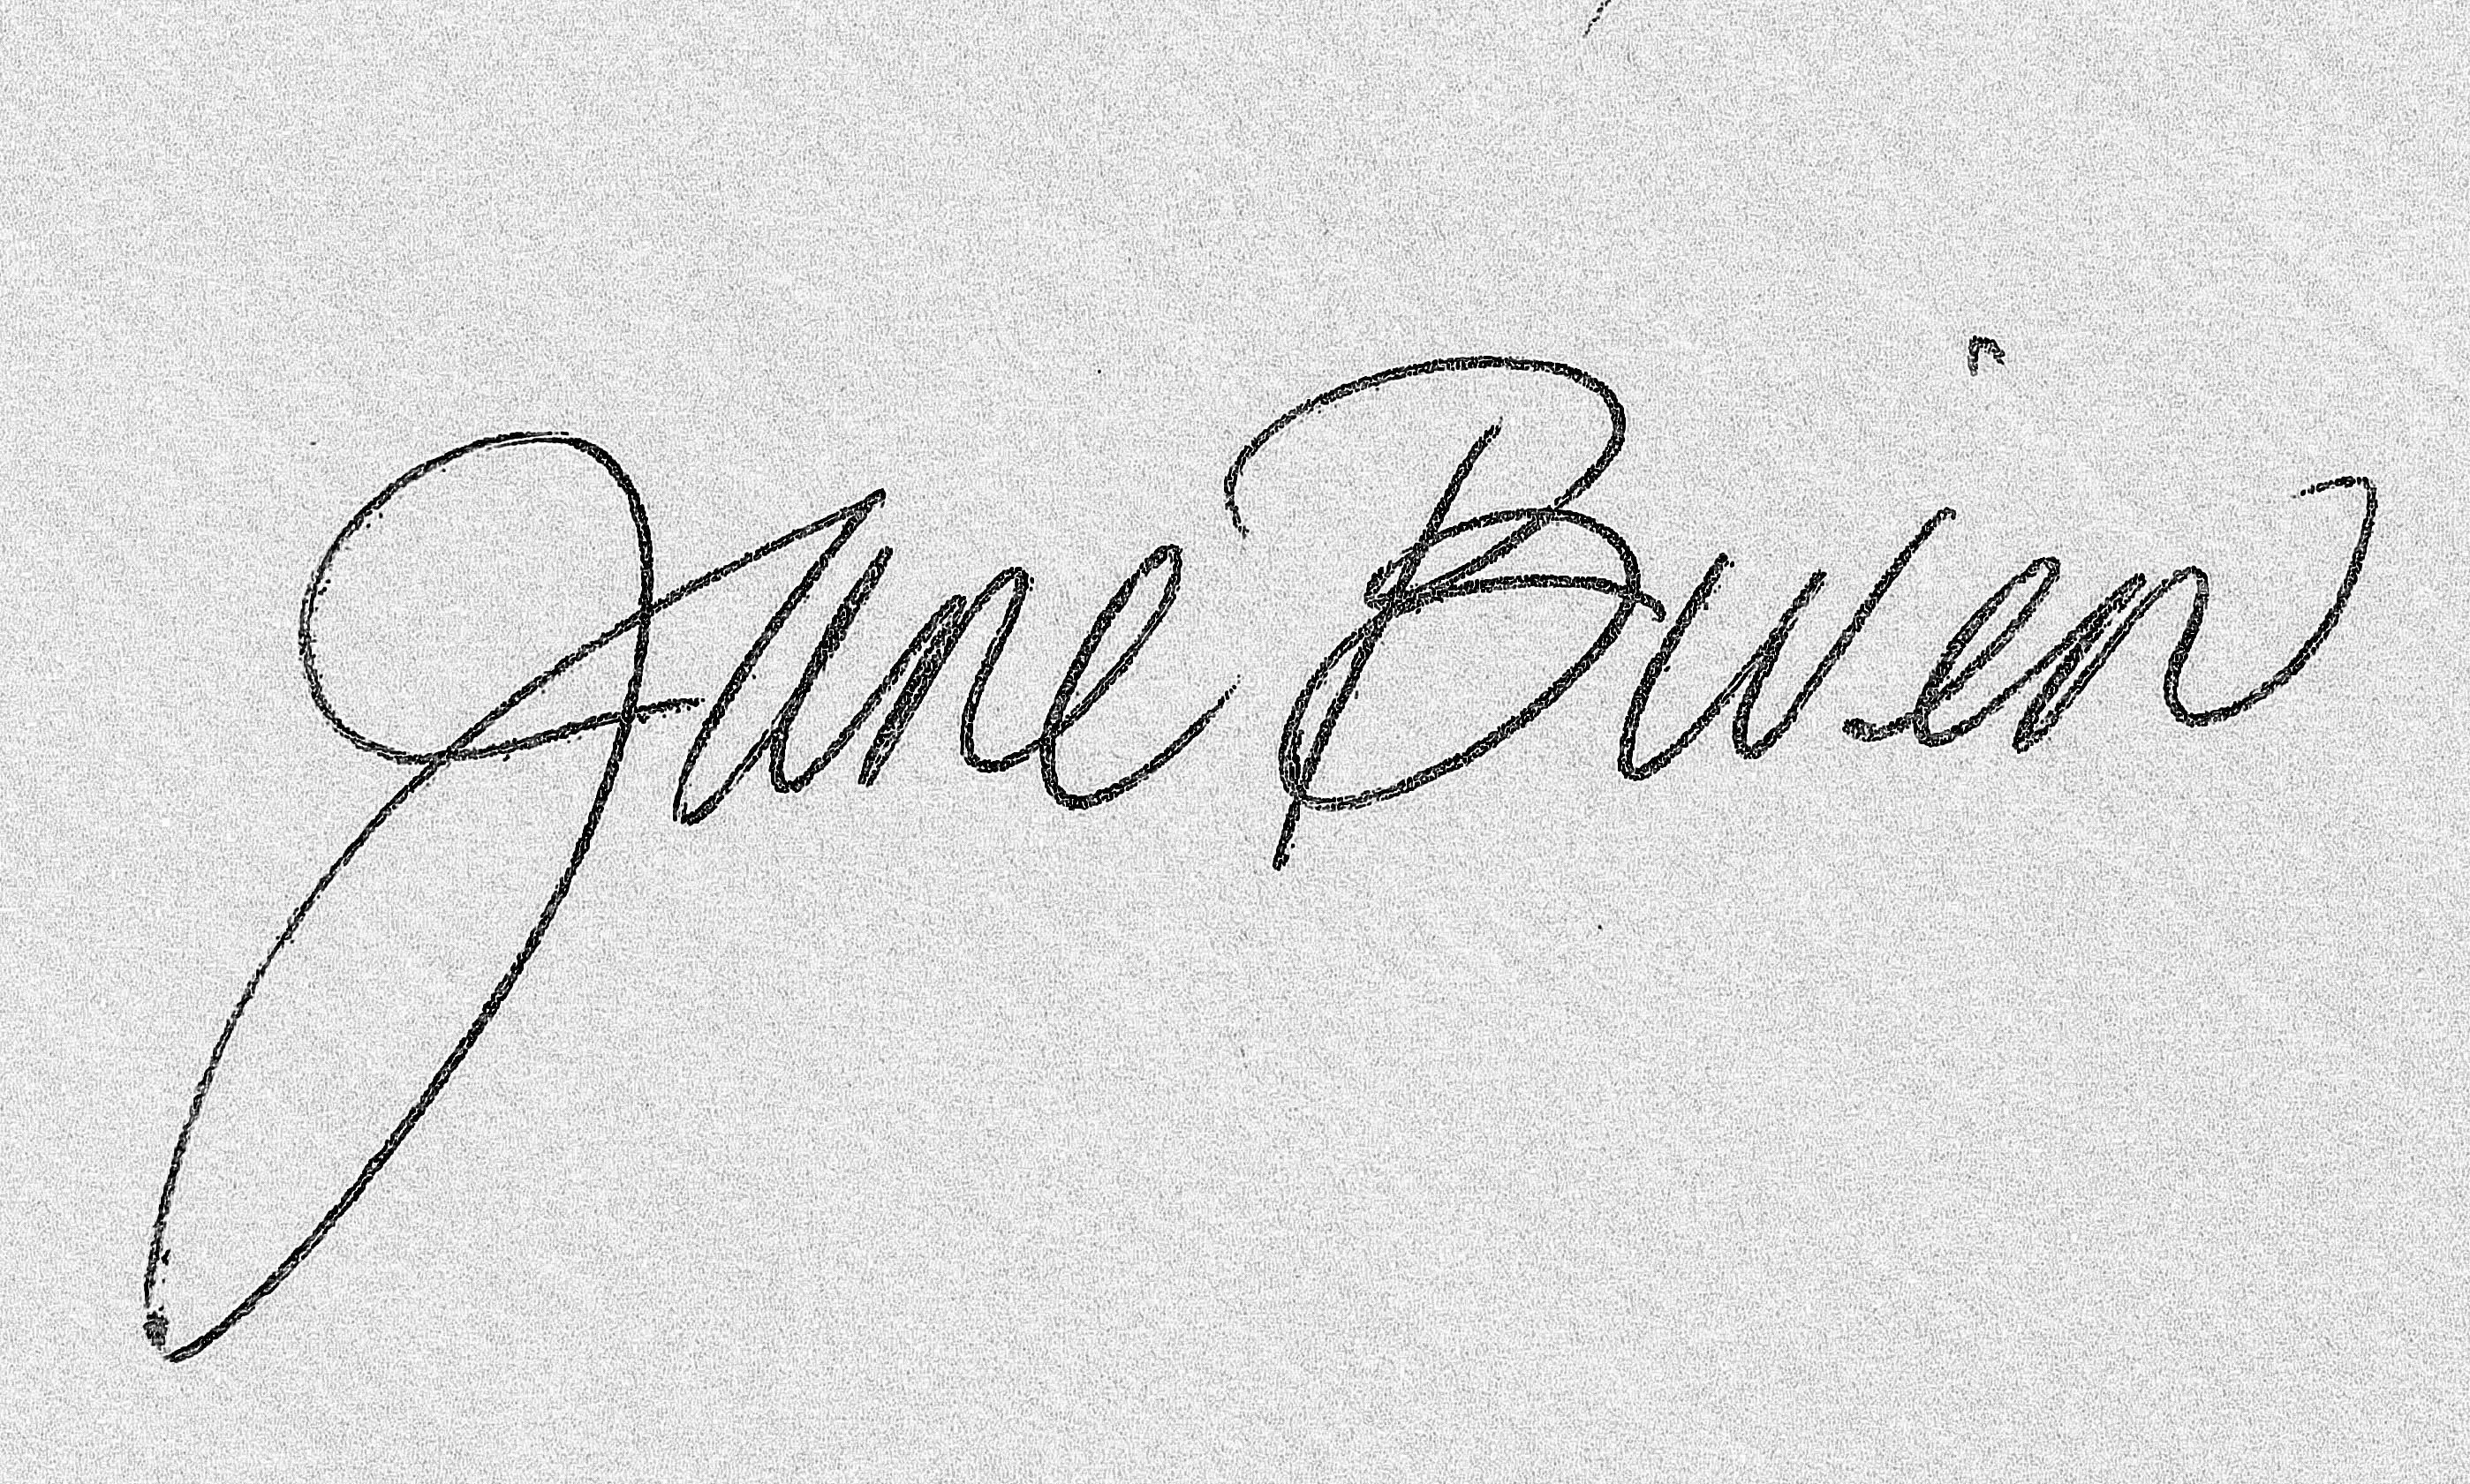 Jane Biven's Signature